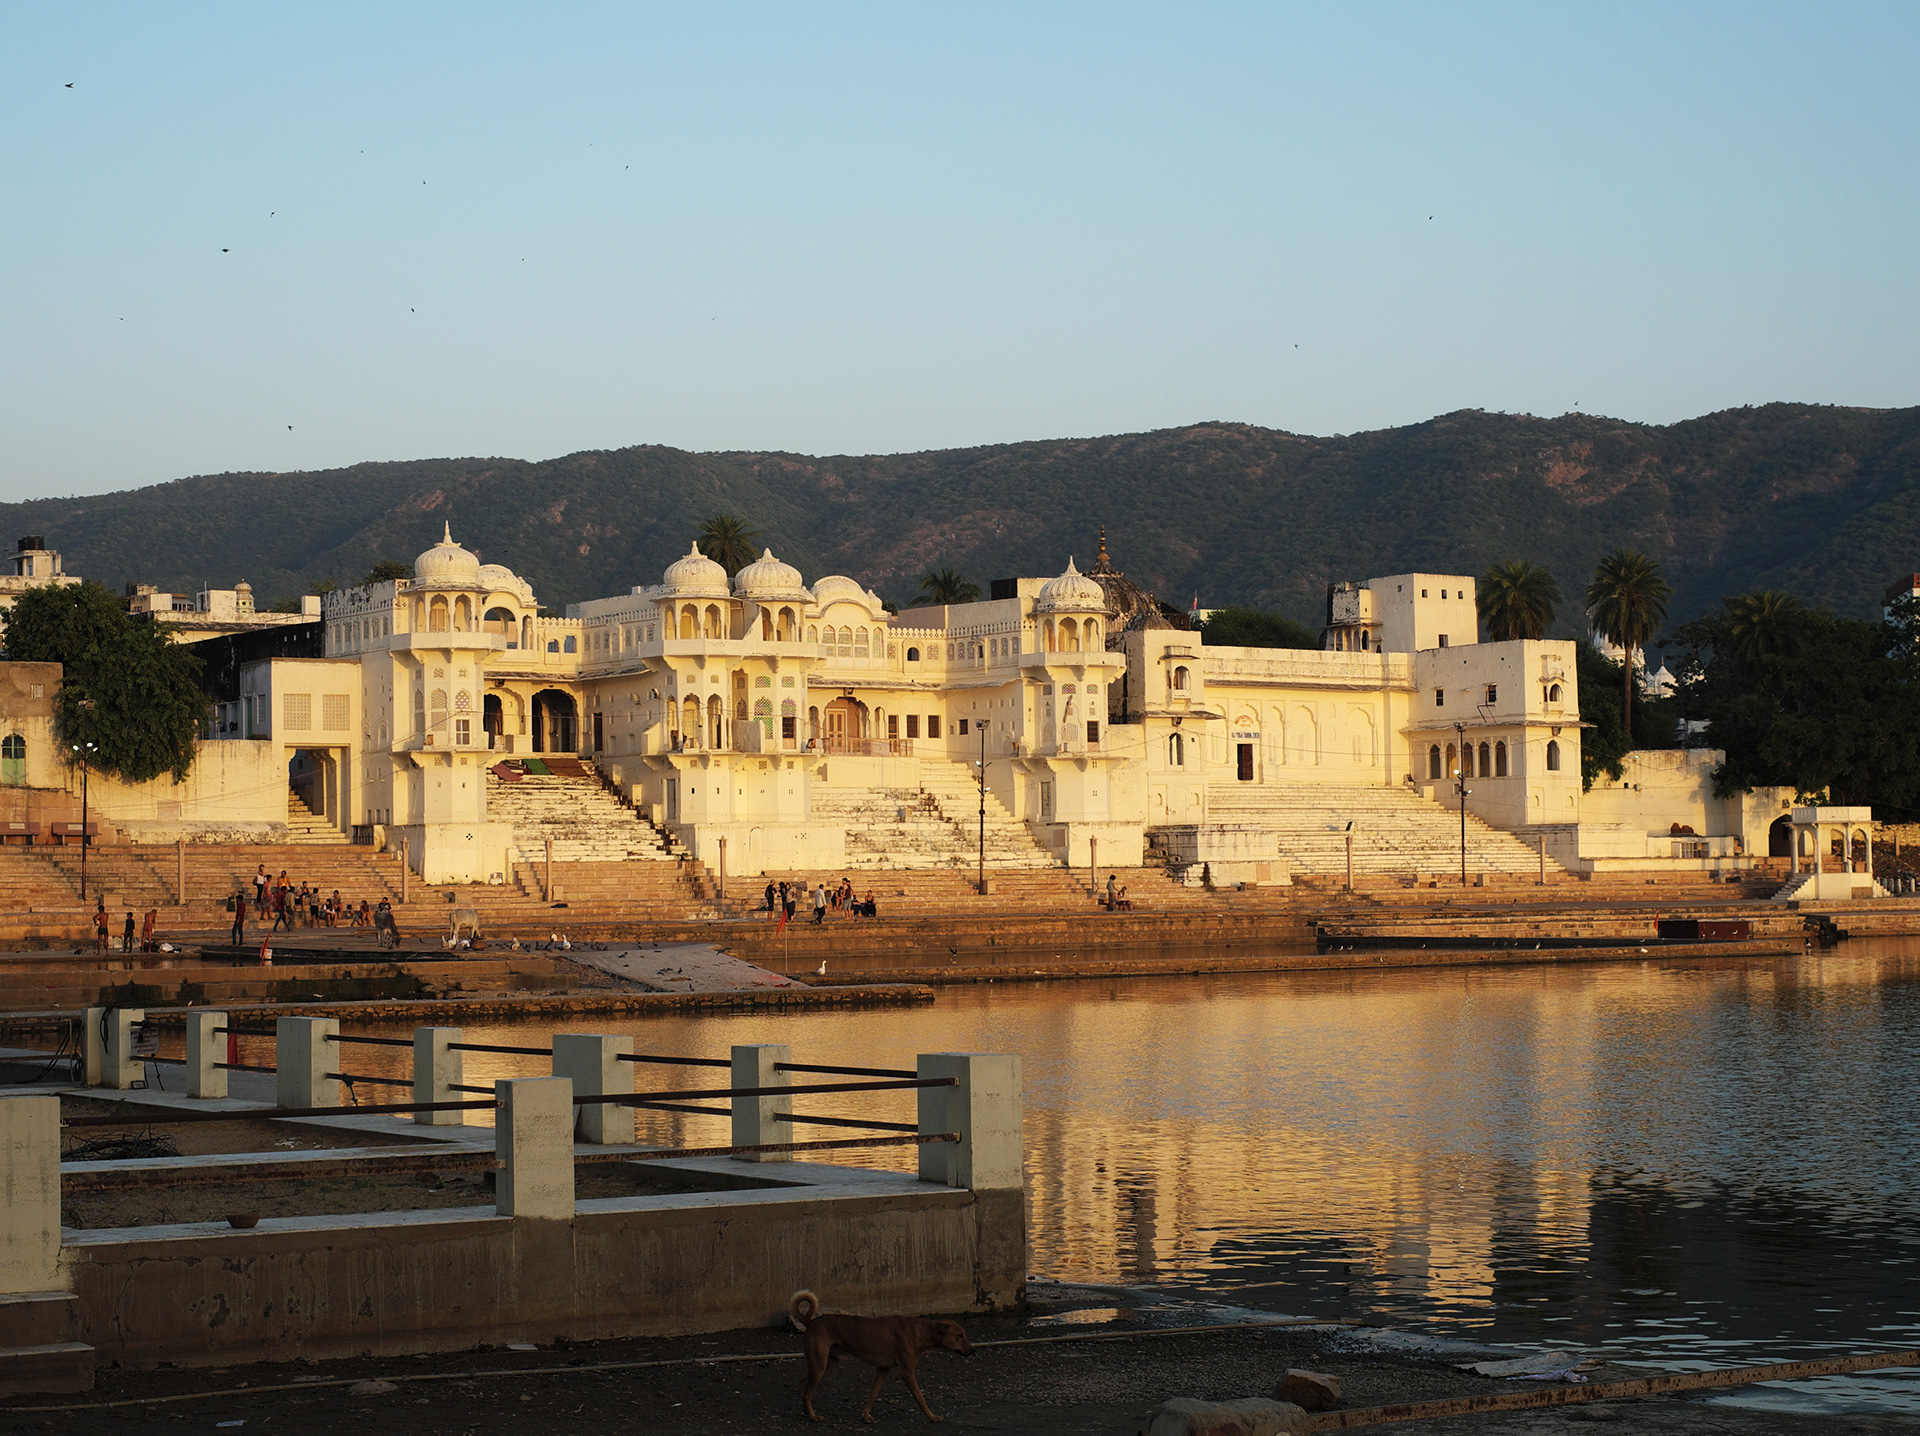 Water edge, Pushkar | Shirish Beri | STIR